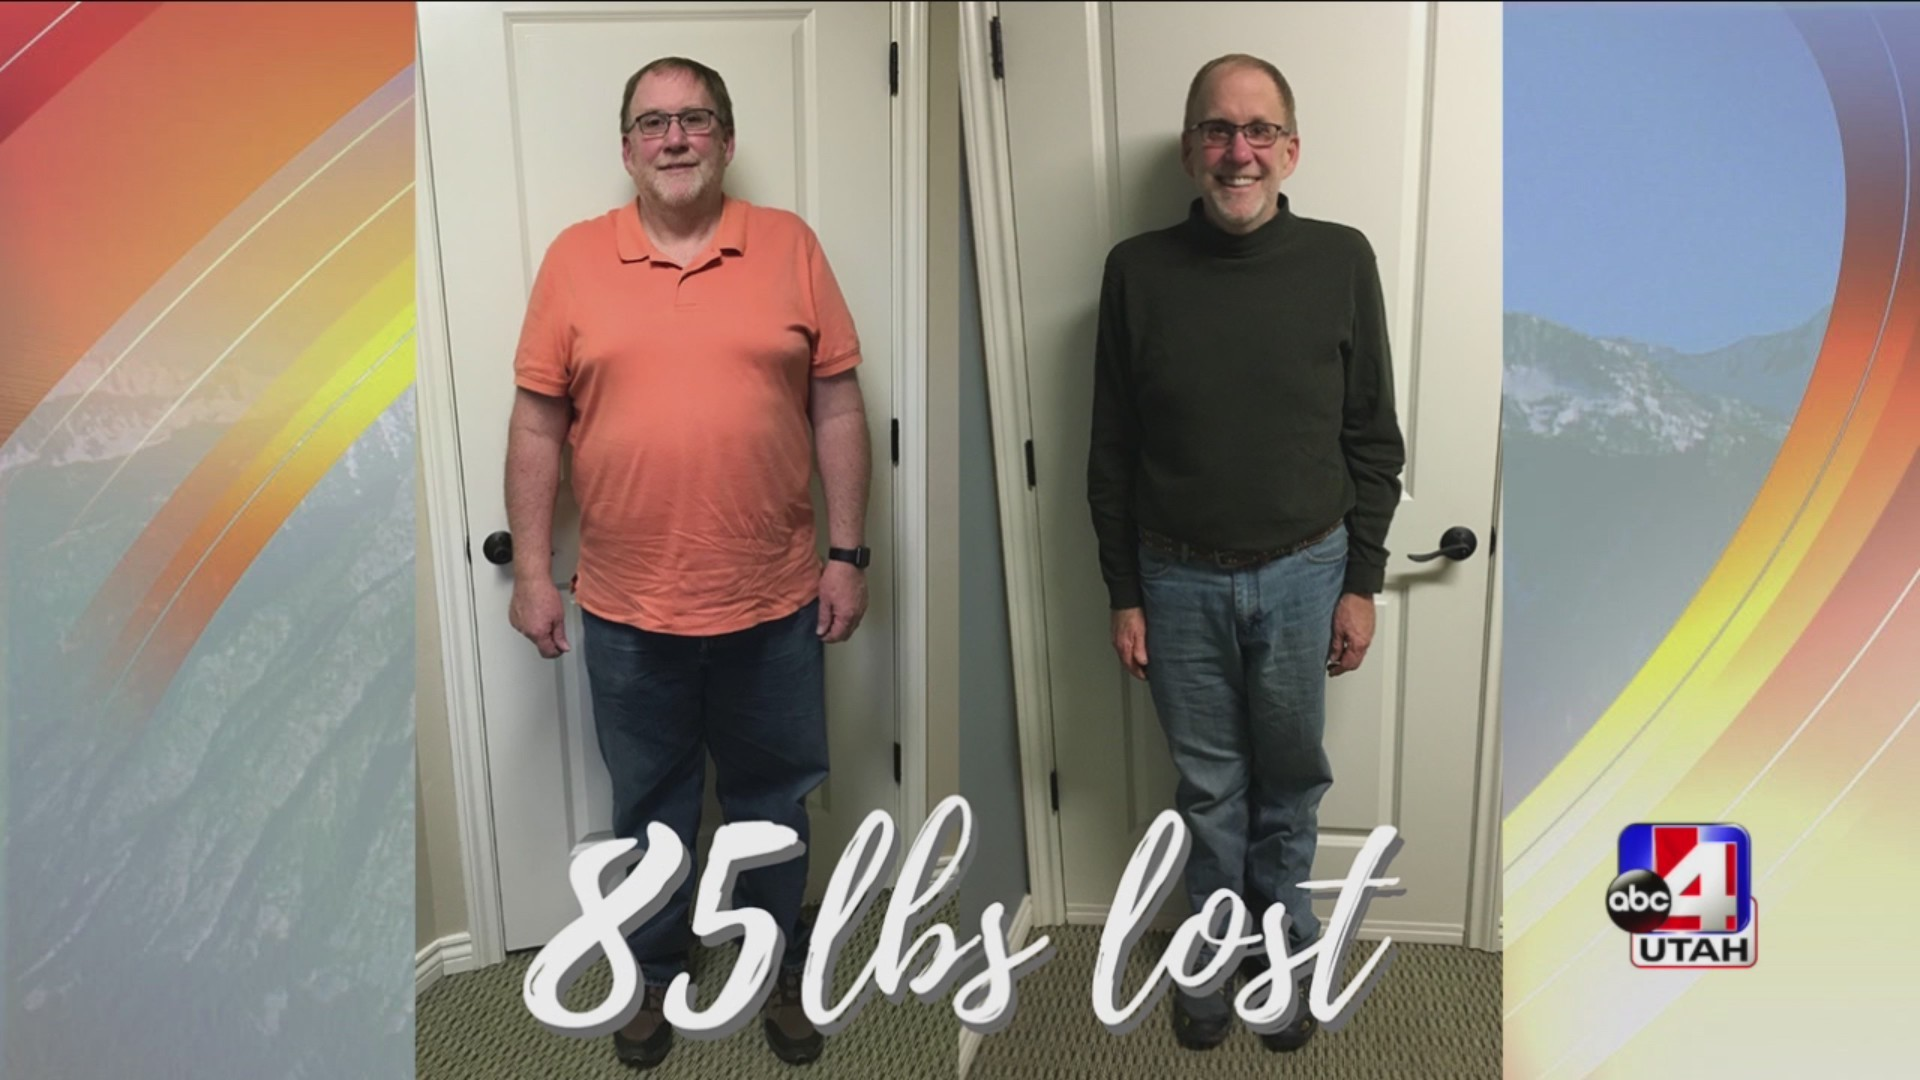 Dr Kells Weight Loss